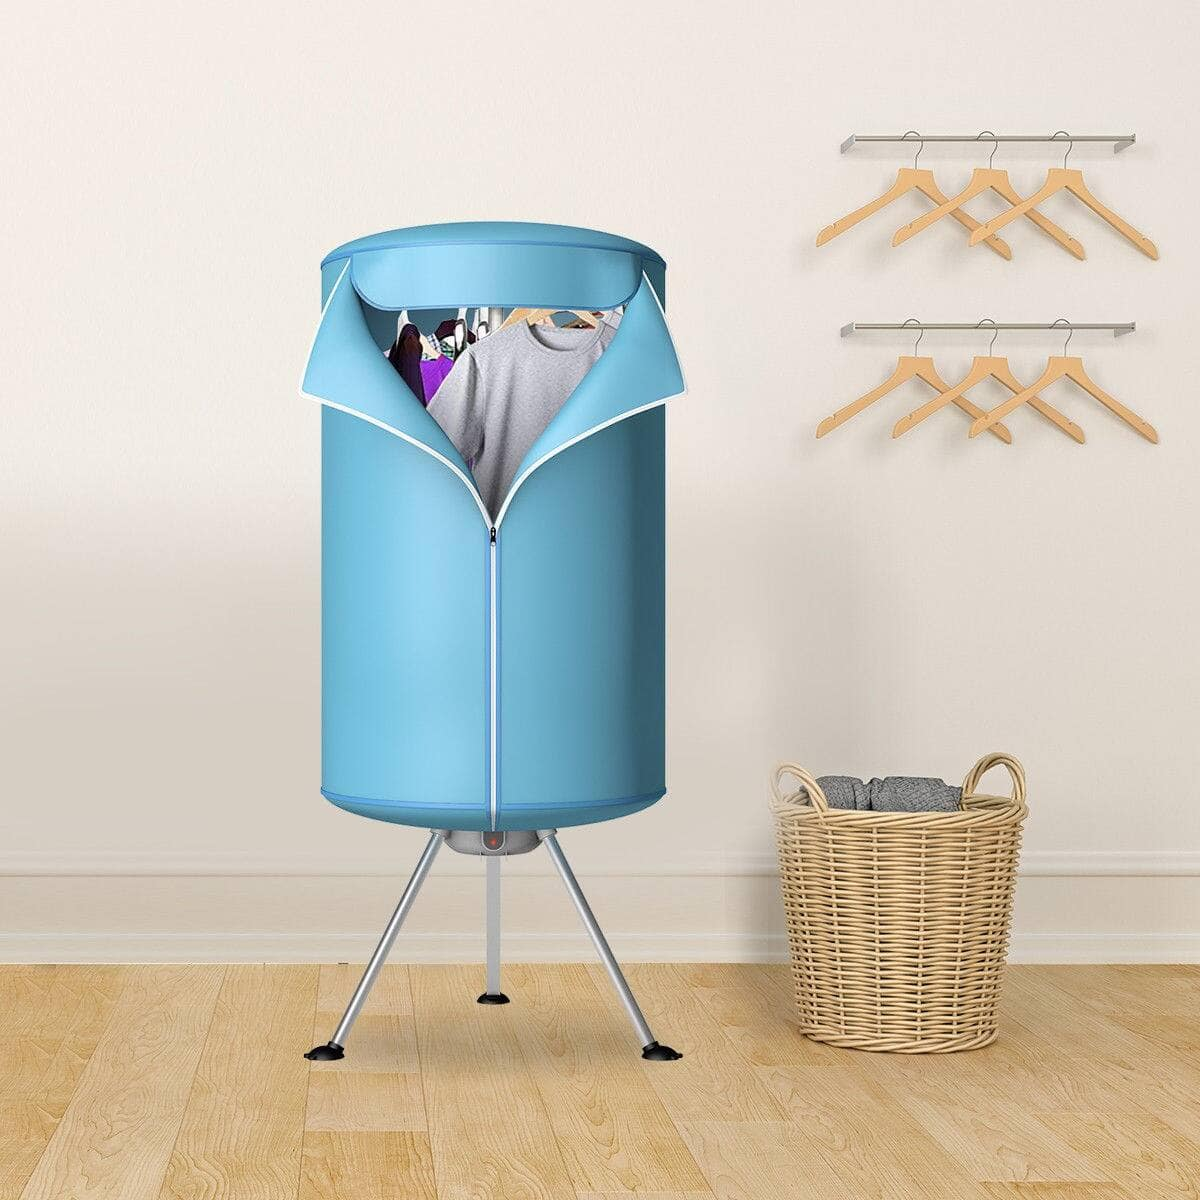 Portable Ventless Laundry Clothes Dryer Folding Drying Machine Heater $57.95 + FS